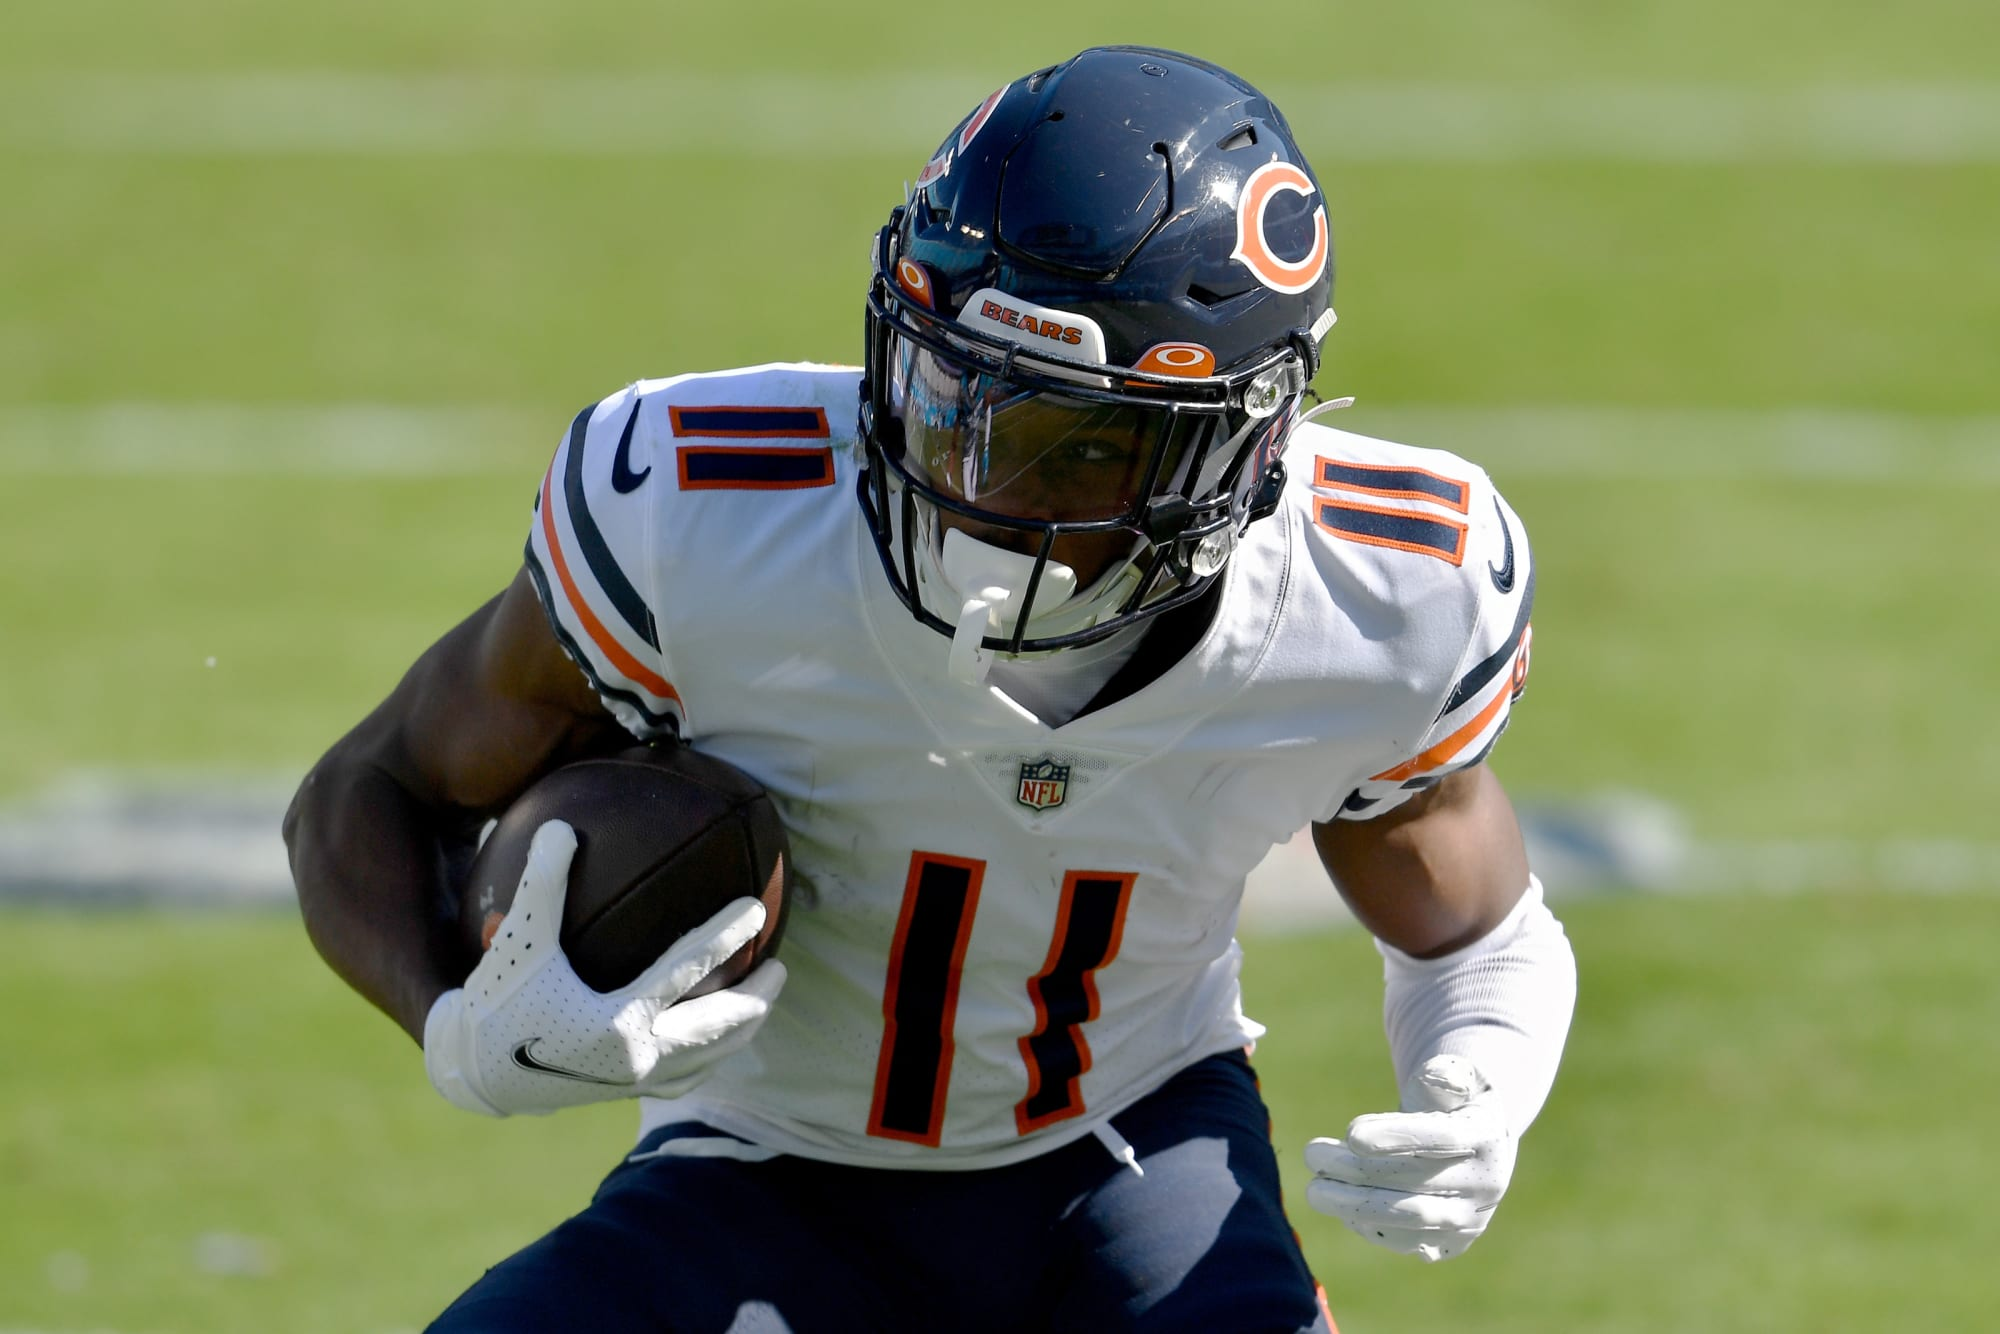 Chicago Bears WR Darnell Mooney is poised for breakout in 2021